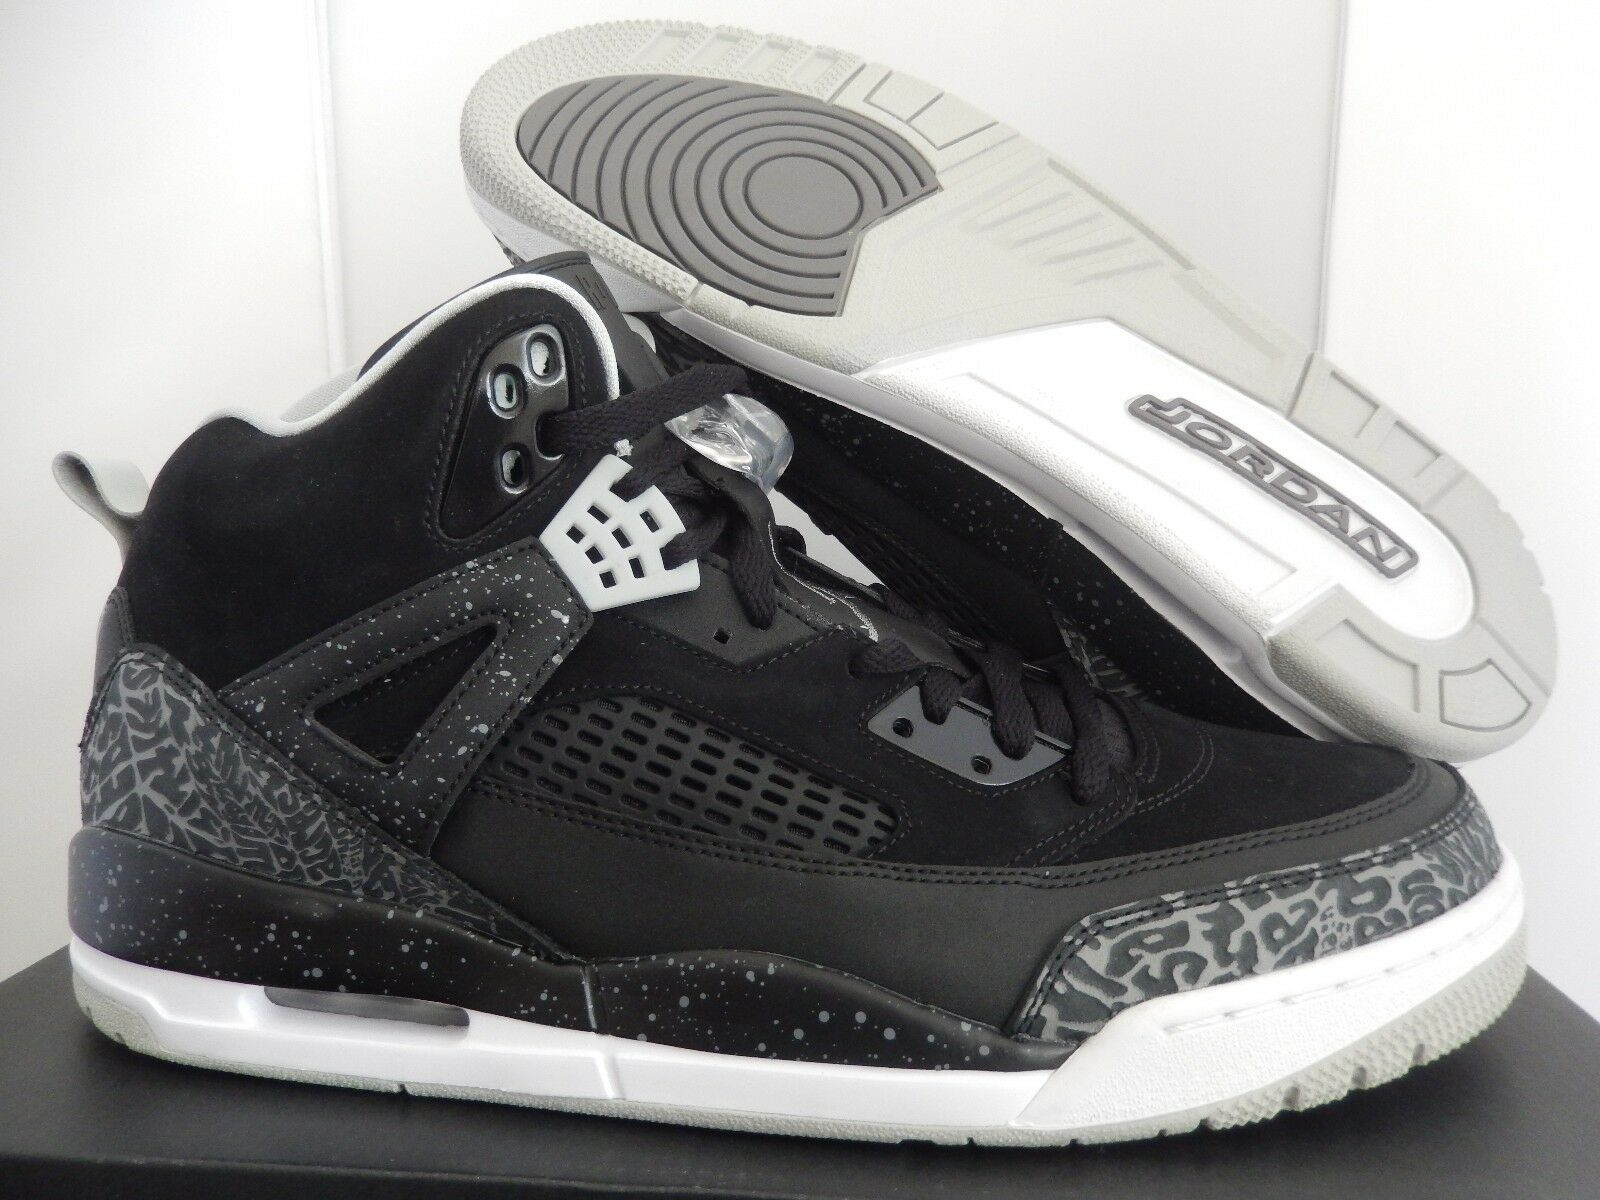 NIKE AIR JORDAN SPIZIKE BLACK-COOL GREY-WHITE SZ 11 OREO! [315371-004]